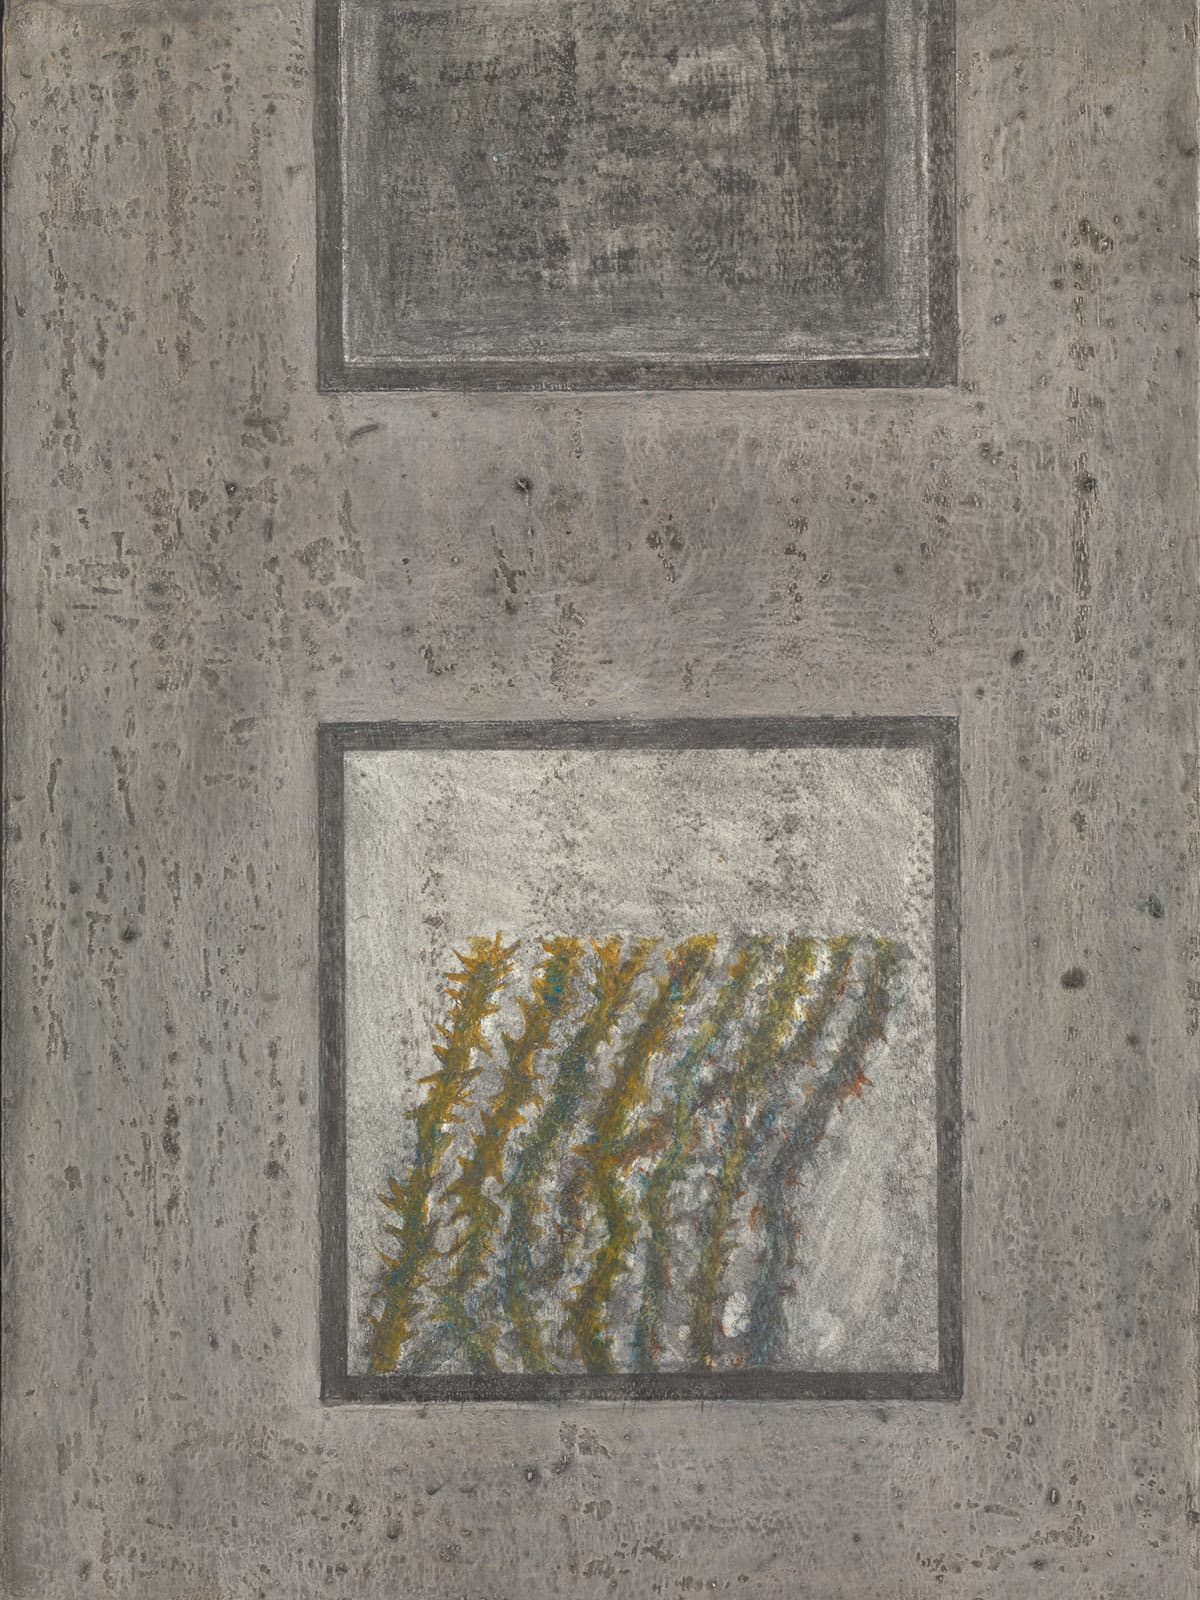 *Untitled*, 1992–3, acrylic paint on wood, by Zahoor ul Akhlaq | © Estate of Zahoor ul Akhlaq,  Courtesy Tate, London. (Purchased with funds provided by the South Asia Acquisitions Committee 2015)